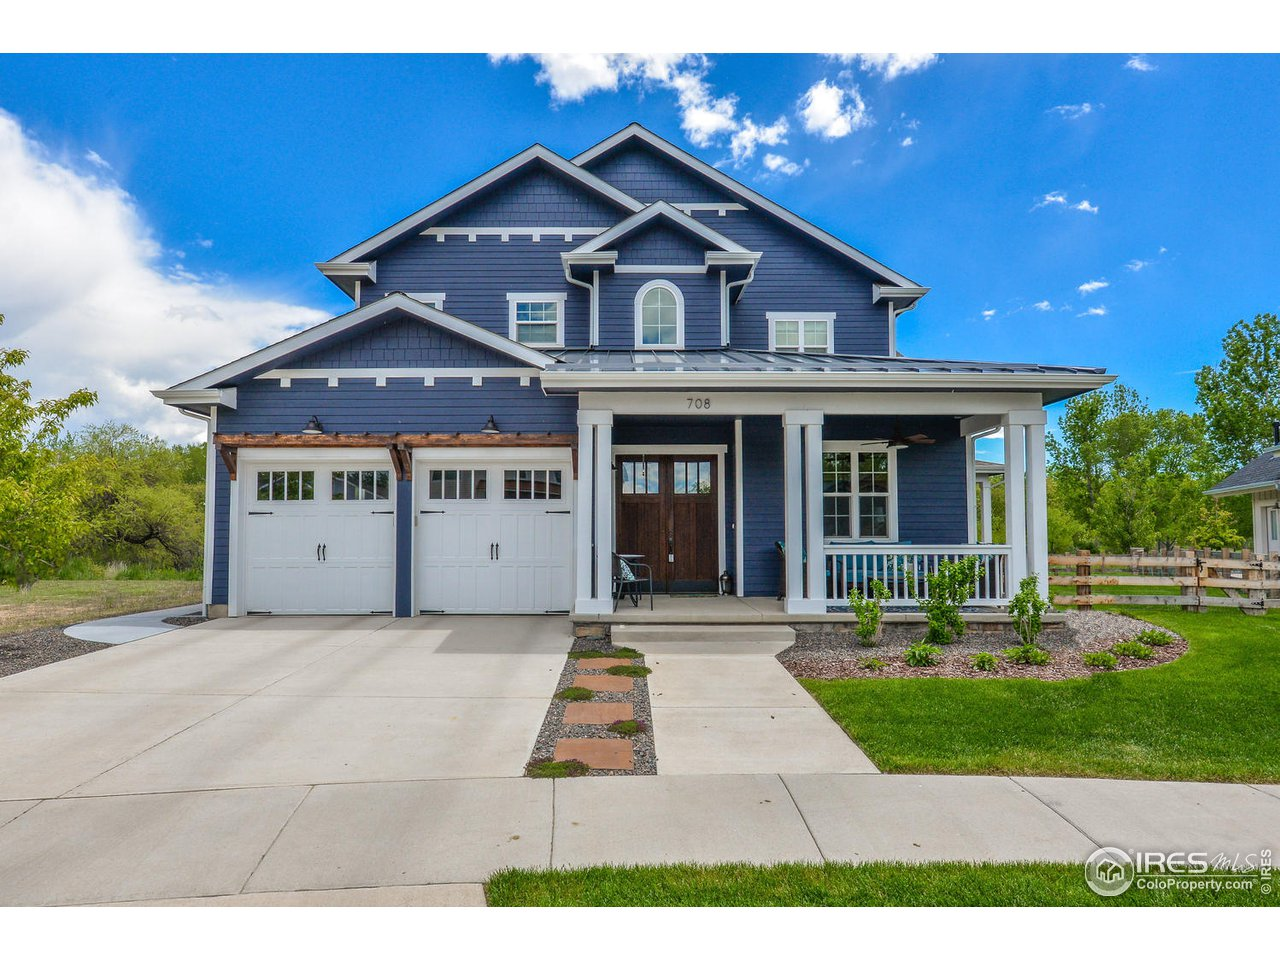 708 Harts Gardens Ln, Fort Collins CO 80521